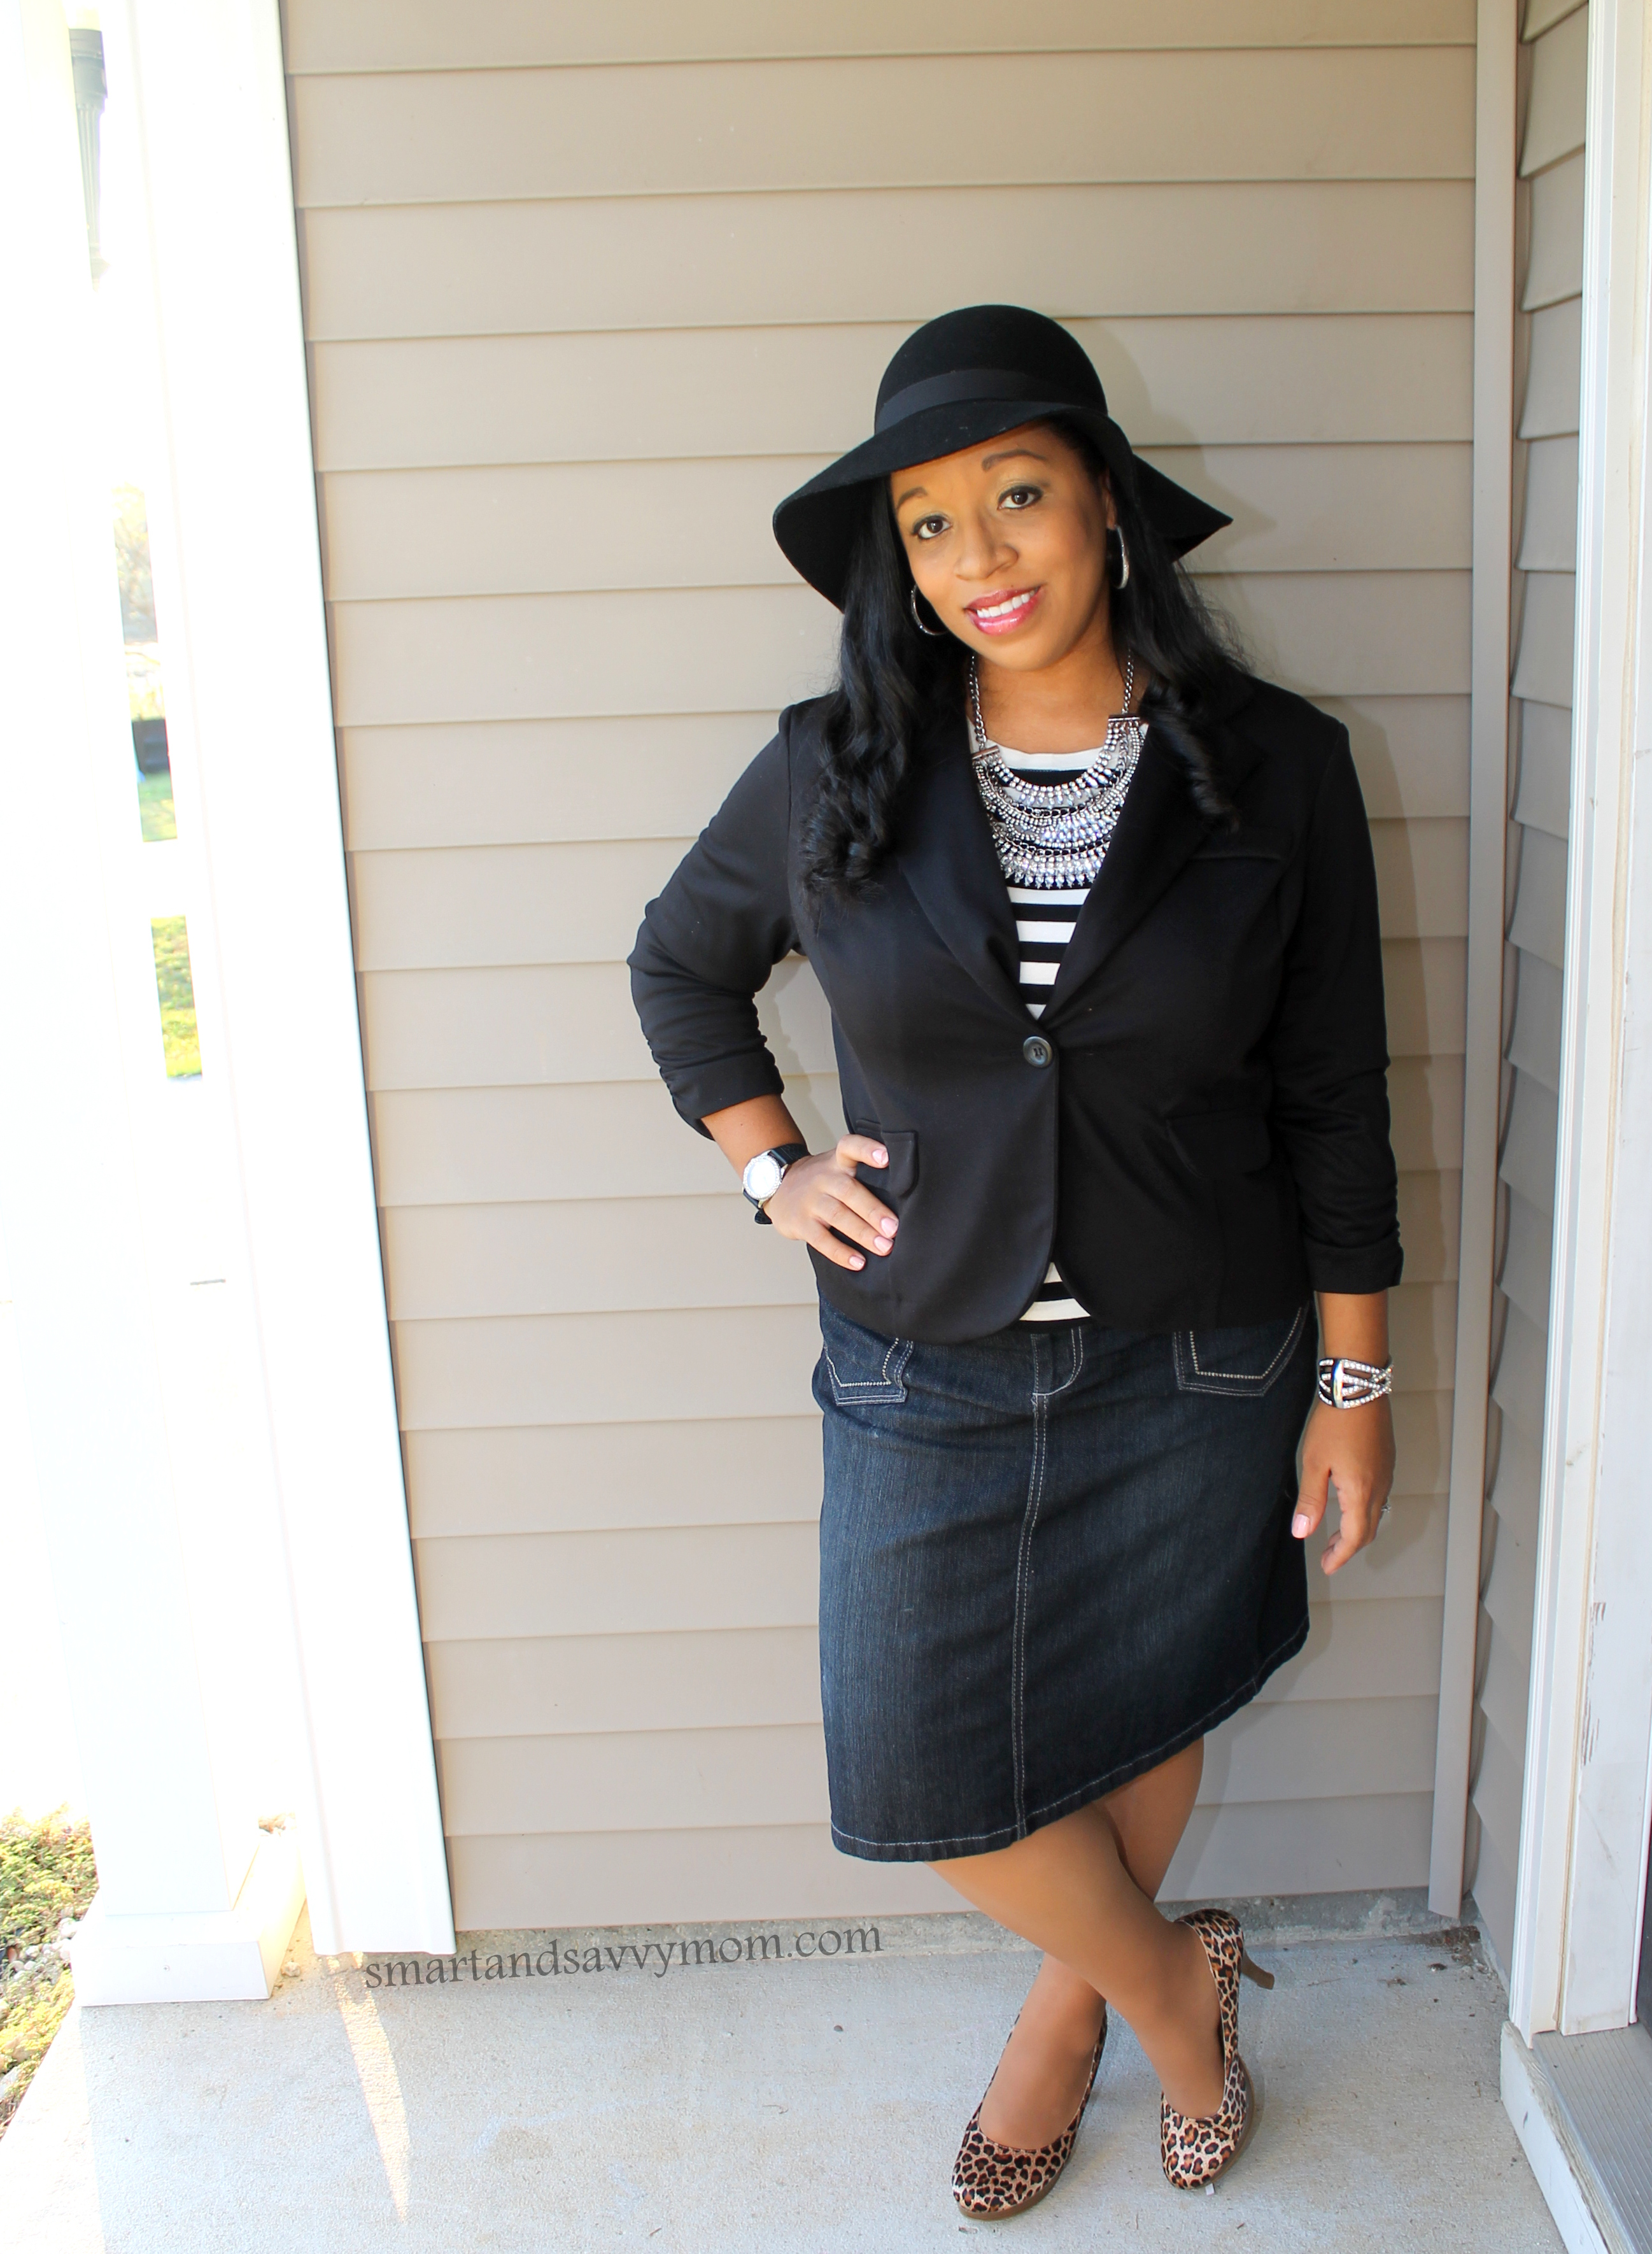 suede hat, striped tee, statement necklace and denim skirt, for an easy dressed up denim look, modest outfit